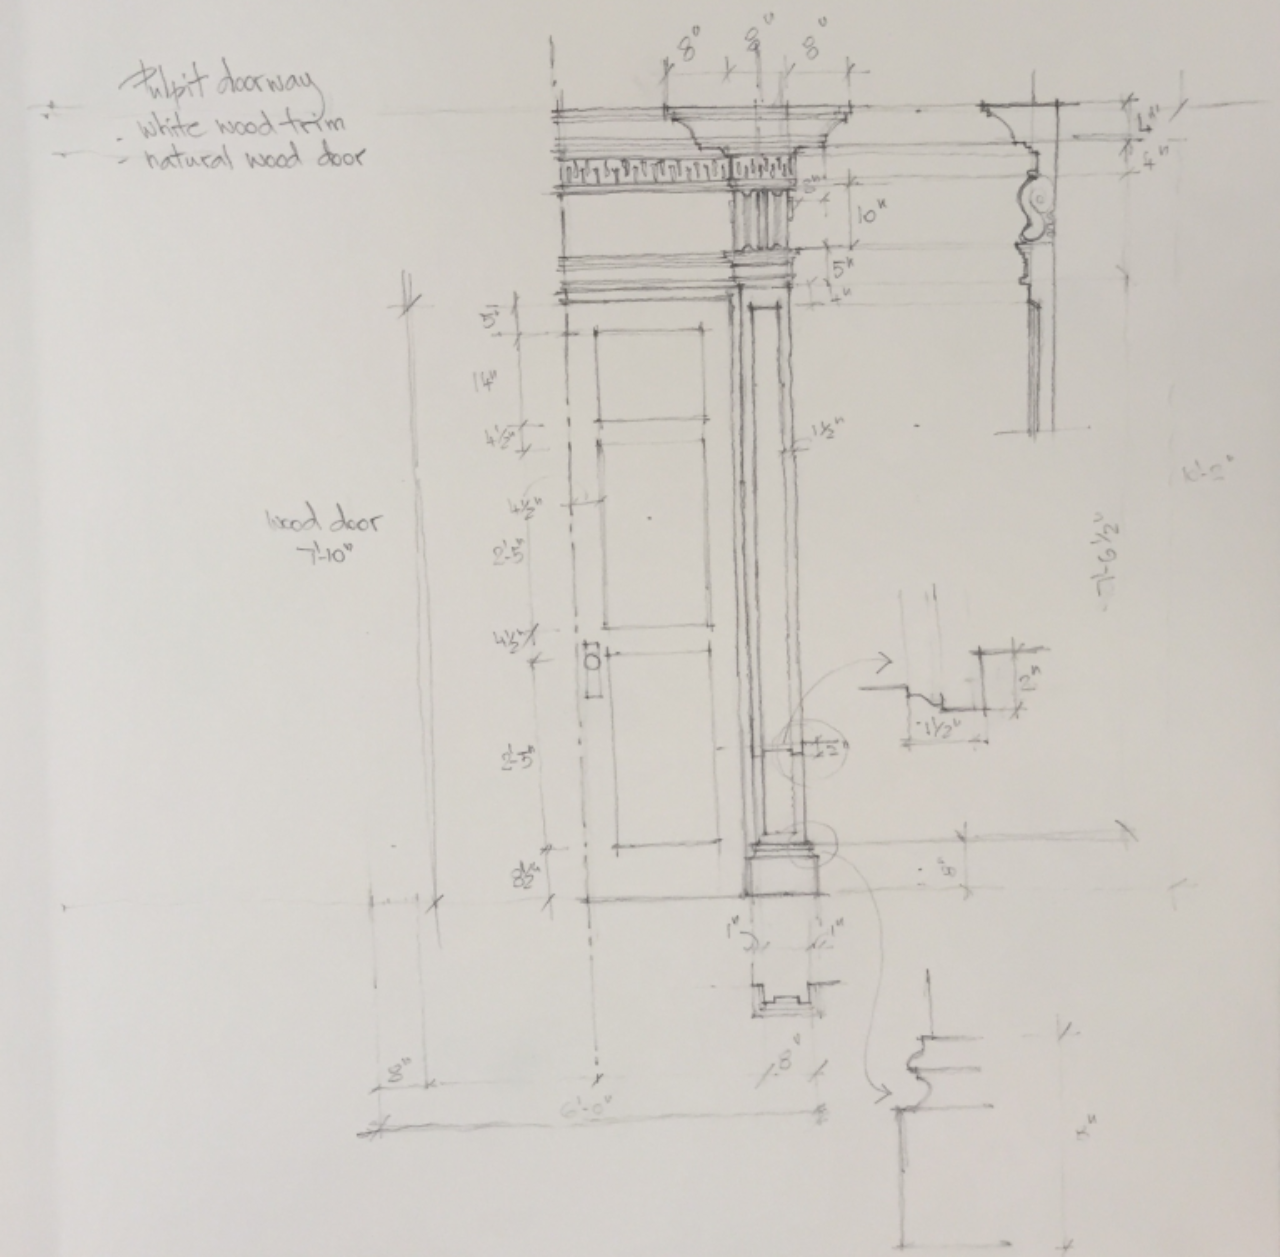 A measured drawing completed by a workshop student